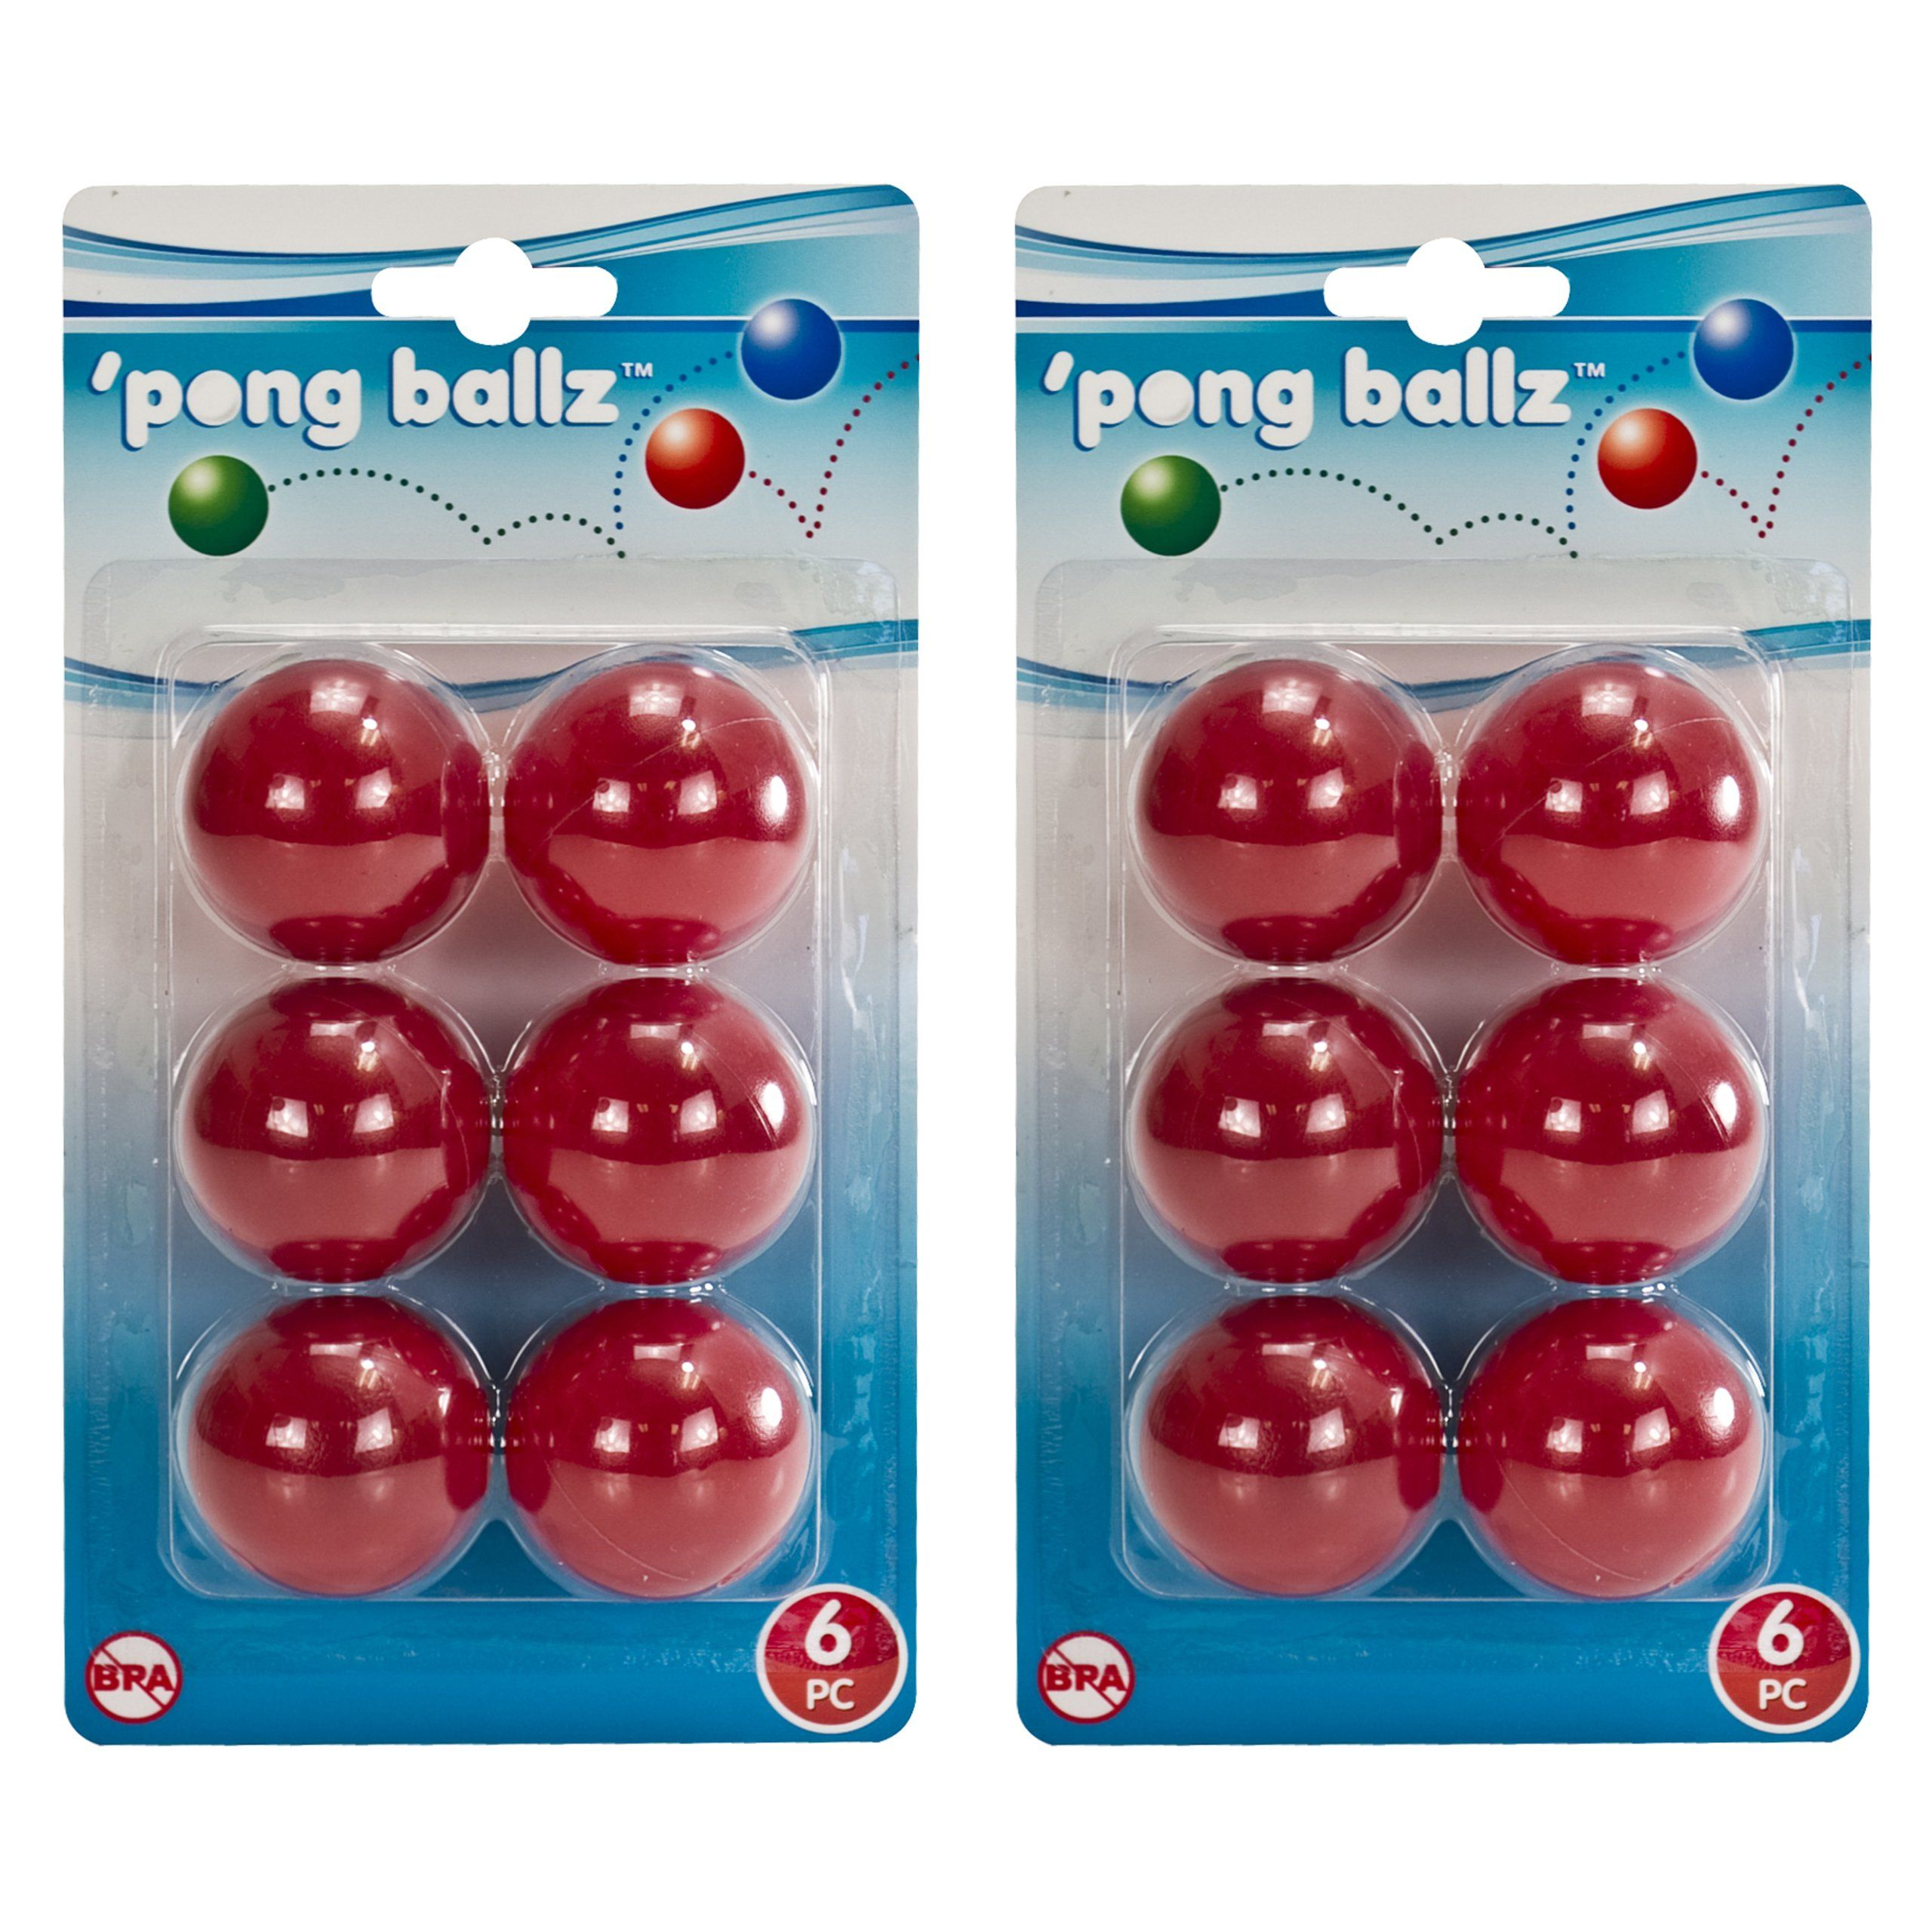 7 Ping Pong Balls for Quidditch Pong game, College